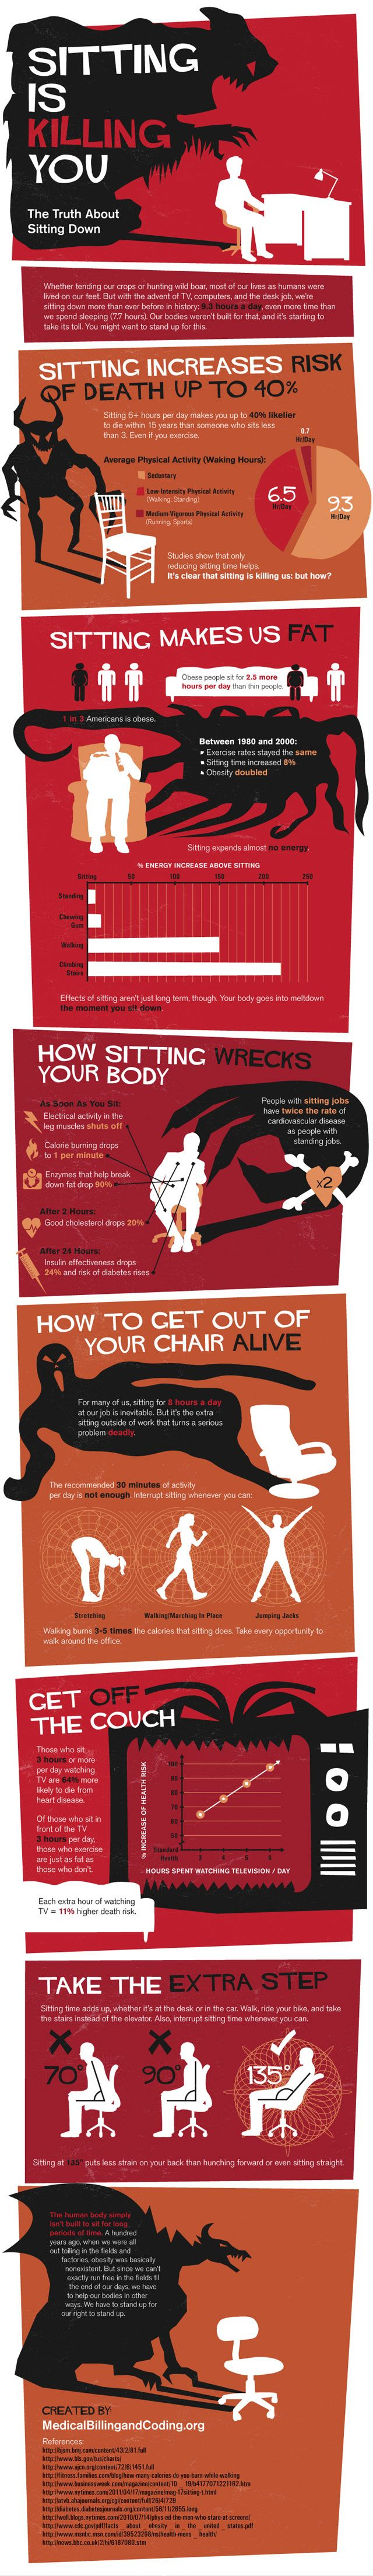 """HEALTHY LIFESTYLE - """"Sitting is Killing You - The Truth about Sitting Down""""."""